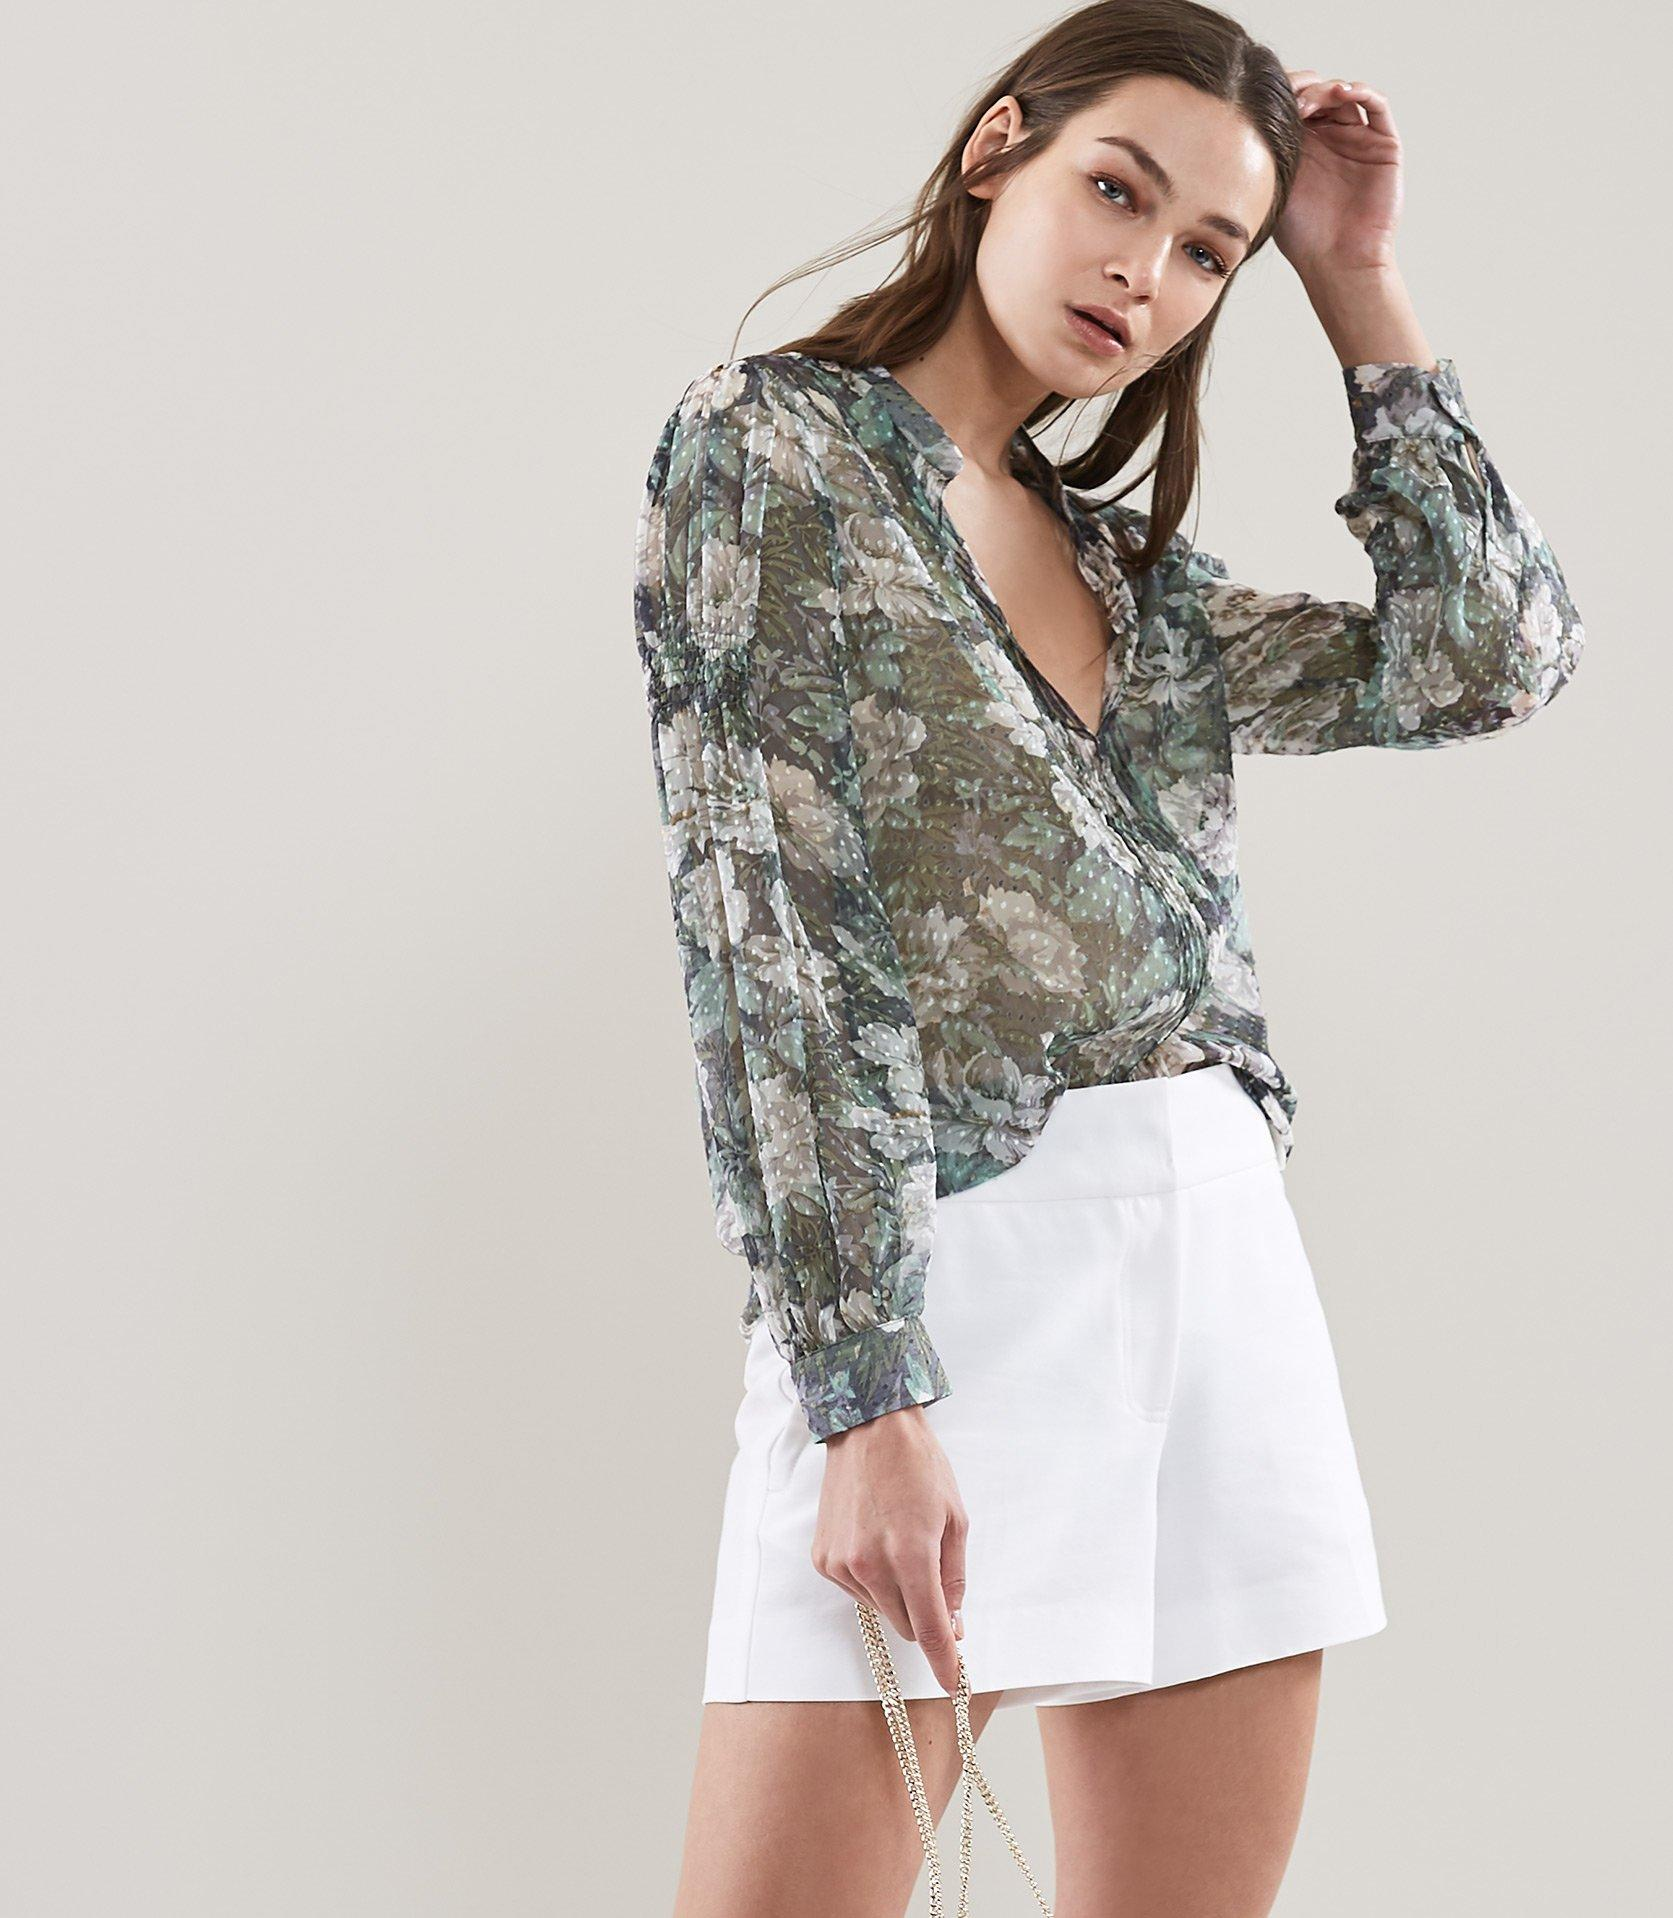 6e2d0f70f36e88 Reiss Delaney - Floral Printed Blouse in Gray - Save 50% - Lyst